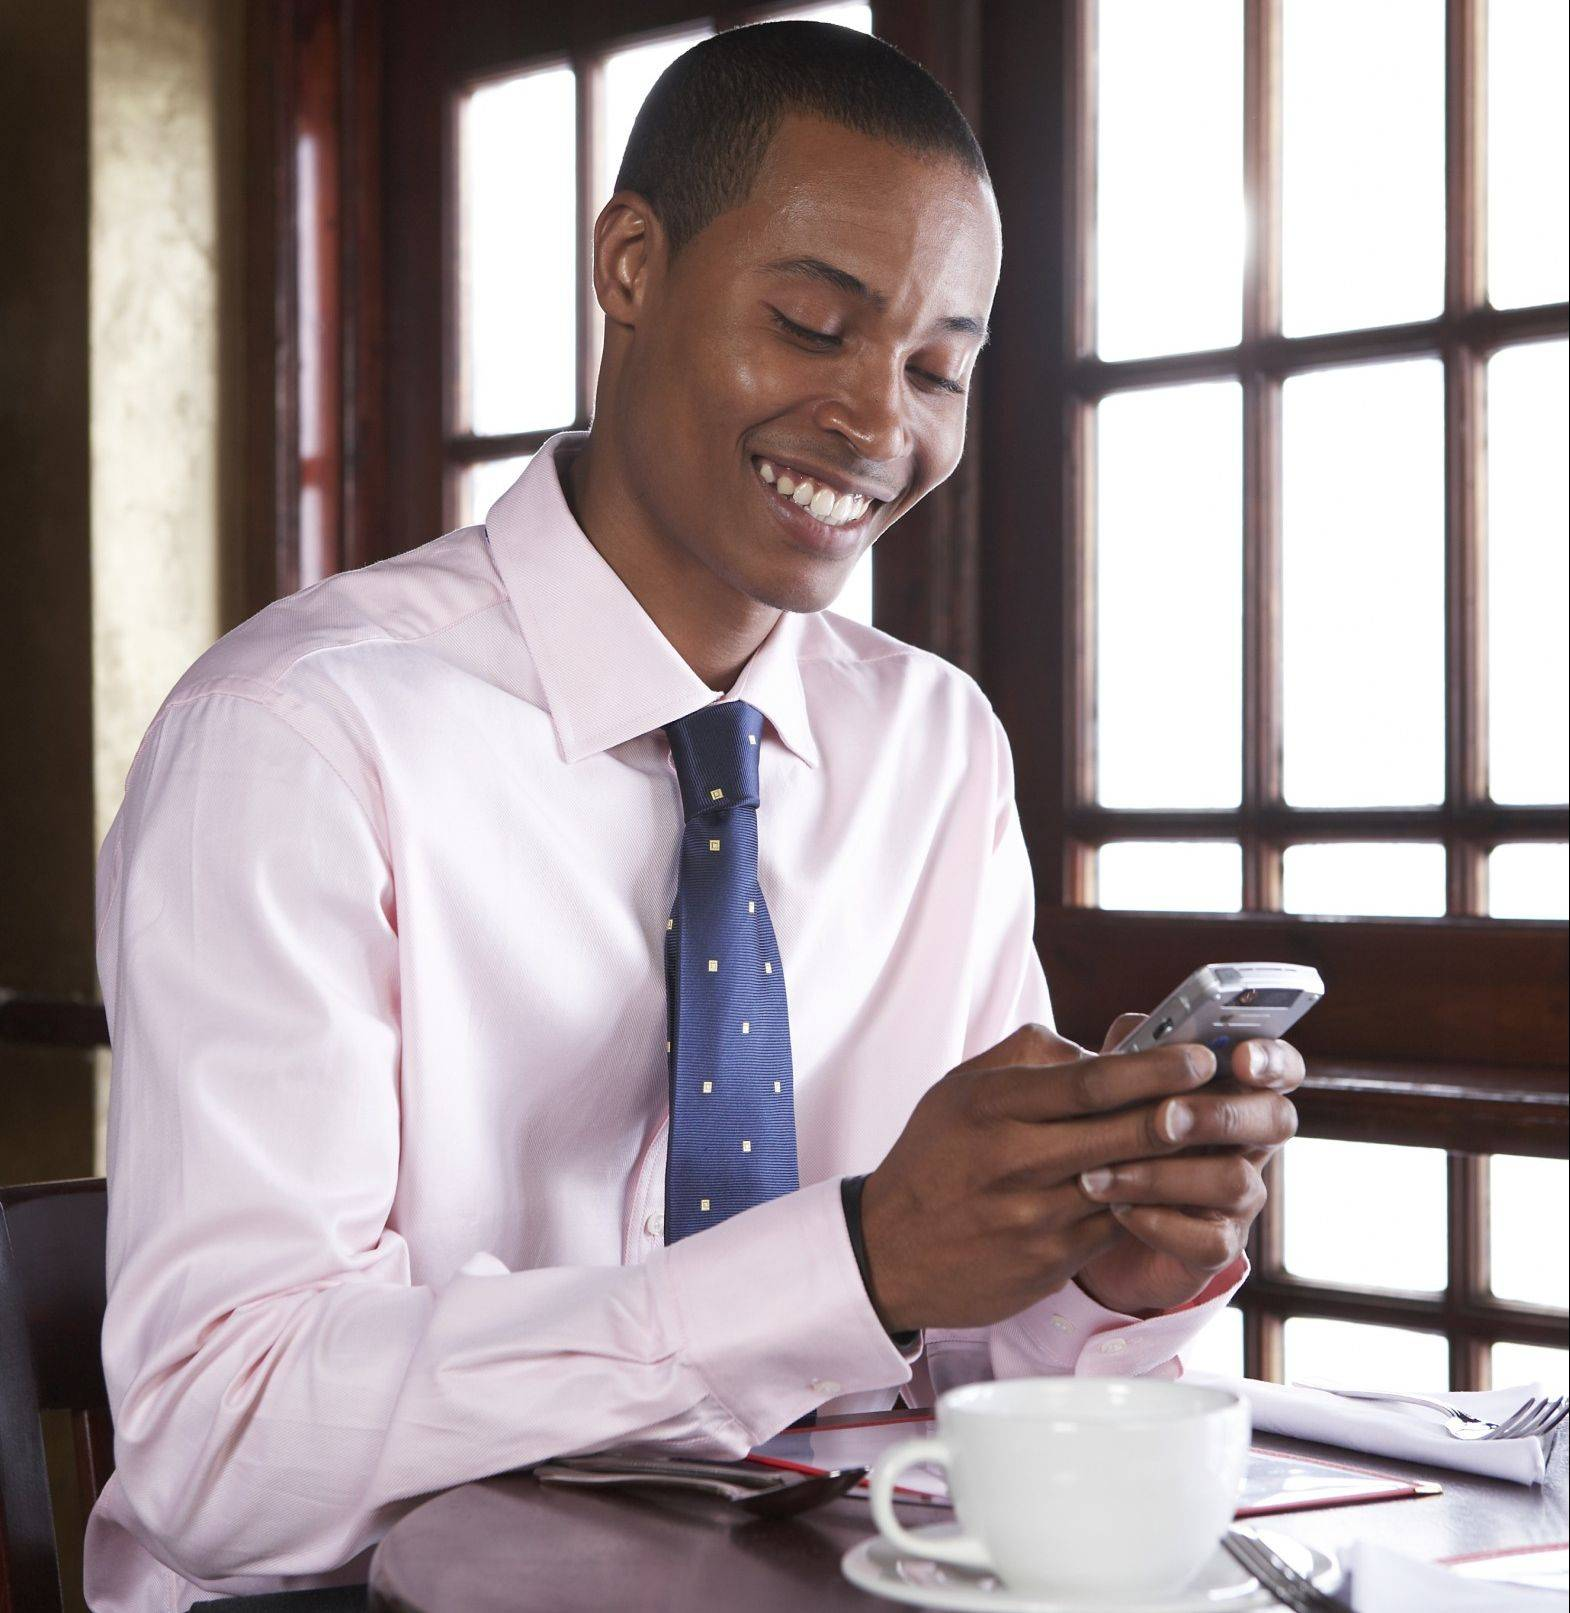 Texting or tweeting is considered an etiquette no-no when dining out.